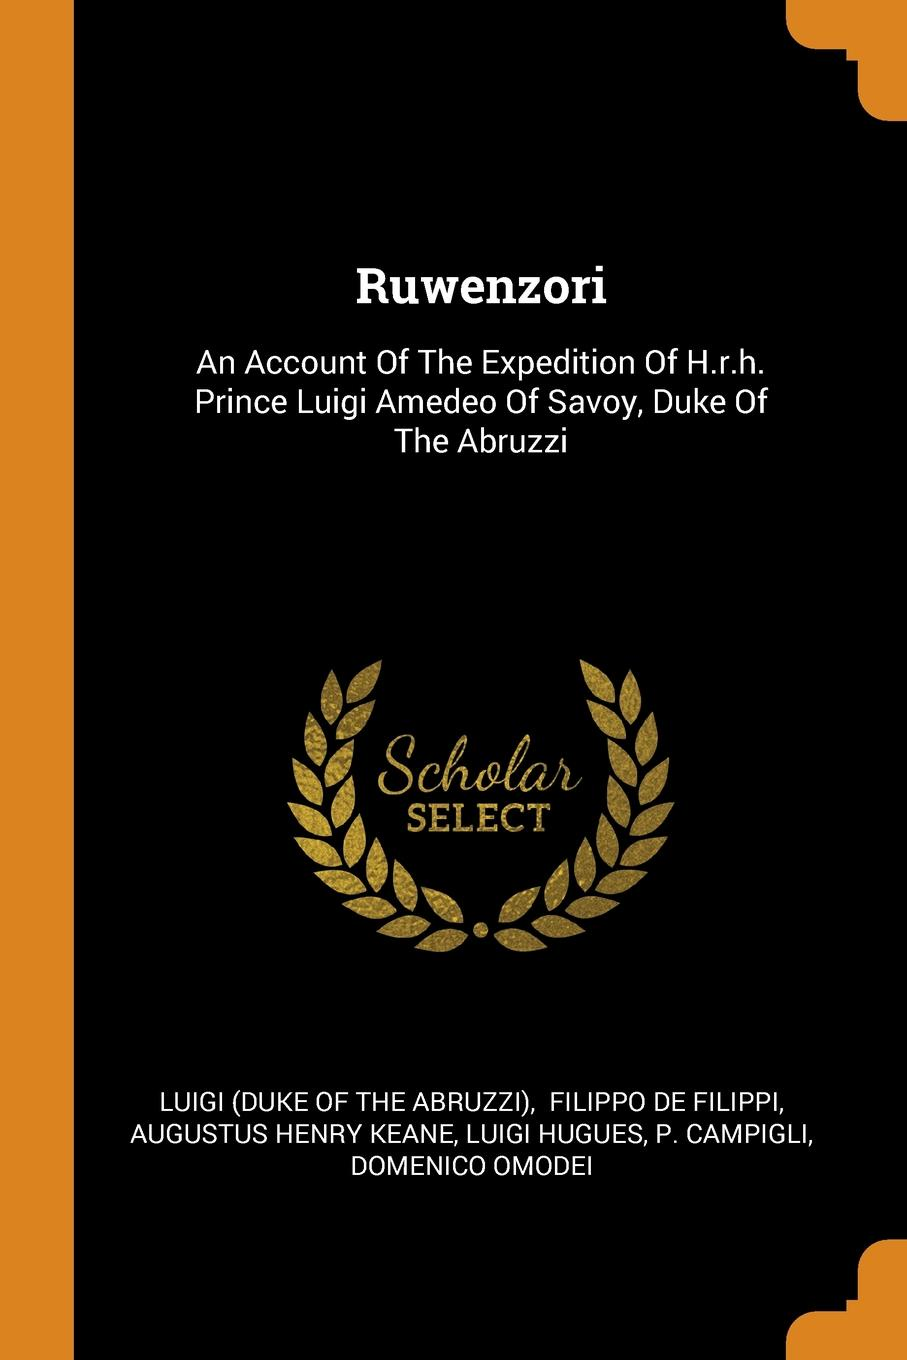 Ruwenzori. An Account Of The Expedition Of H.r.h. Prince Luigi Amedeo Of Savoy, Duke Of The Abruzzi